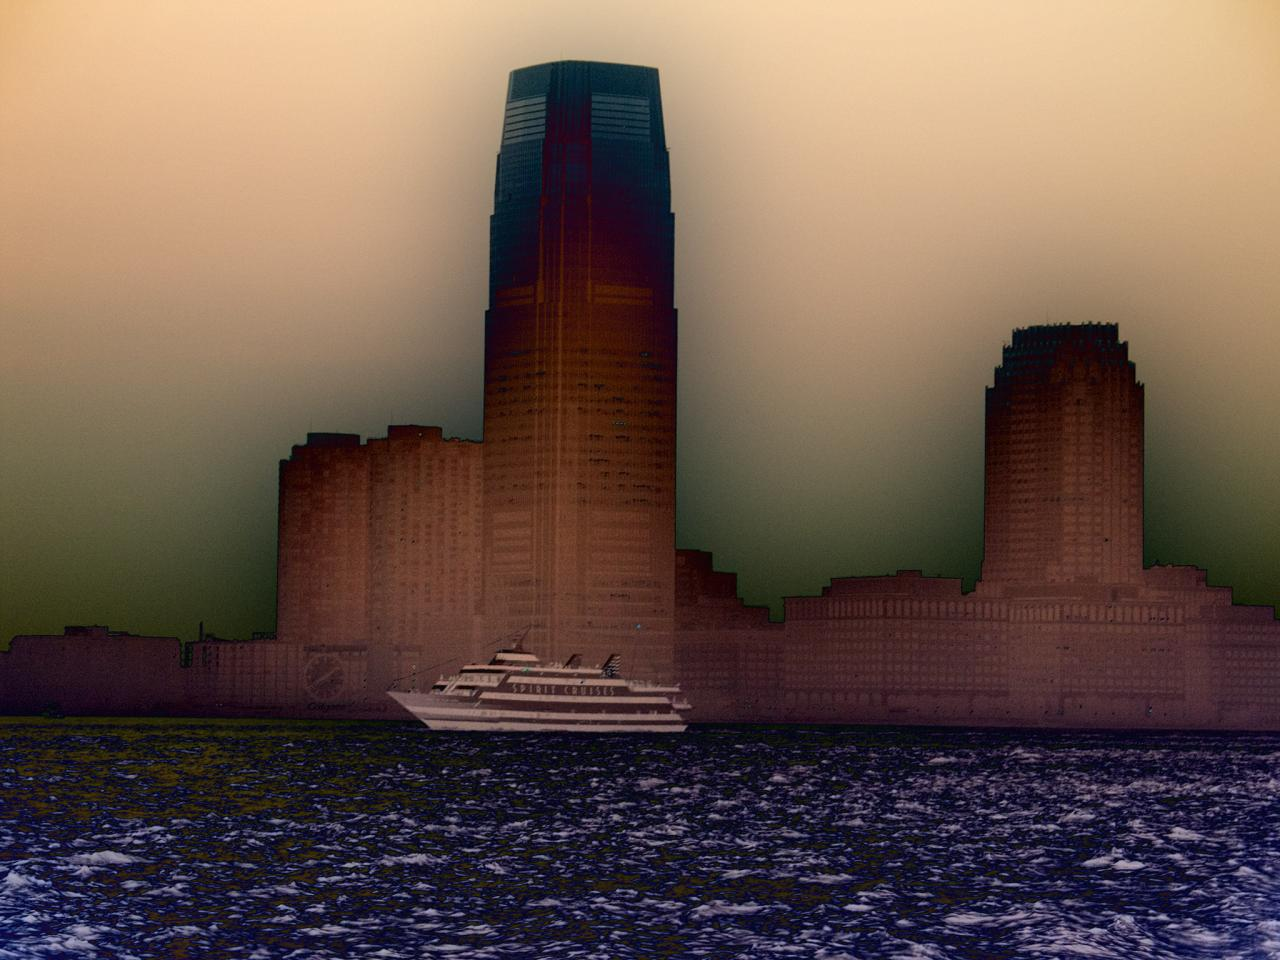 Spirit Cruise, 2007, digital photograph photoshopped by Orin Buck.